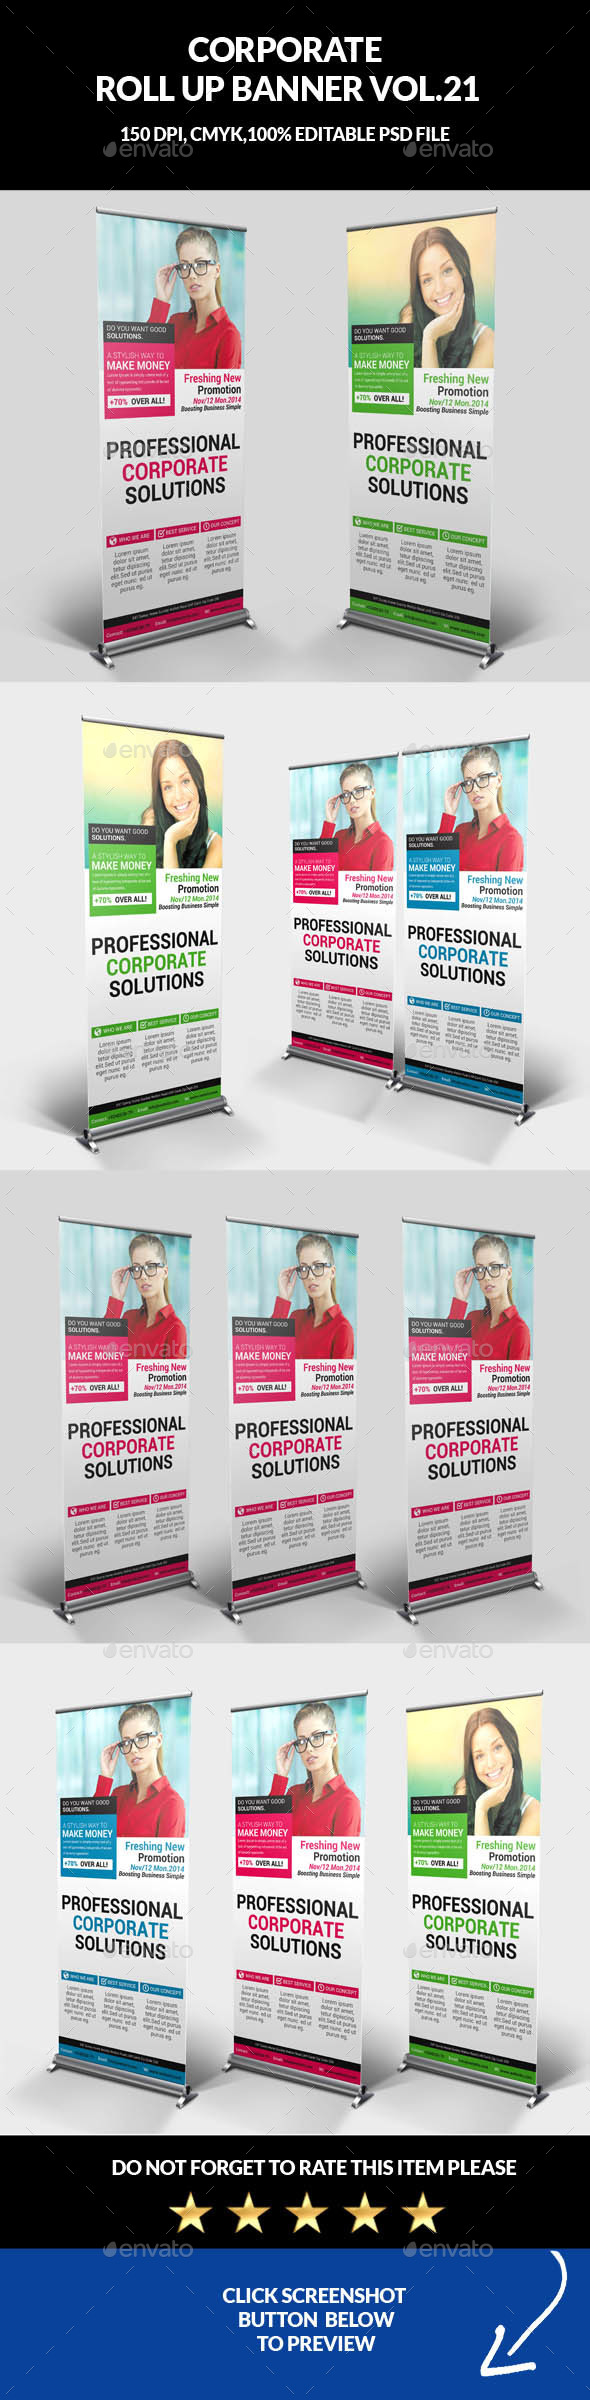 Corporate Business Roll Up Banner Vol.21 - Signage Print Templates